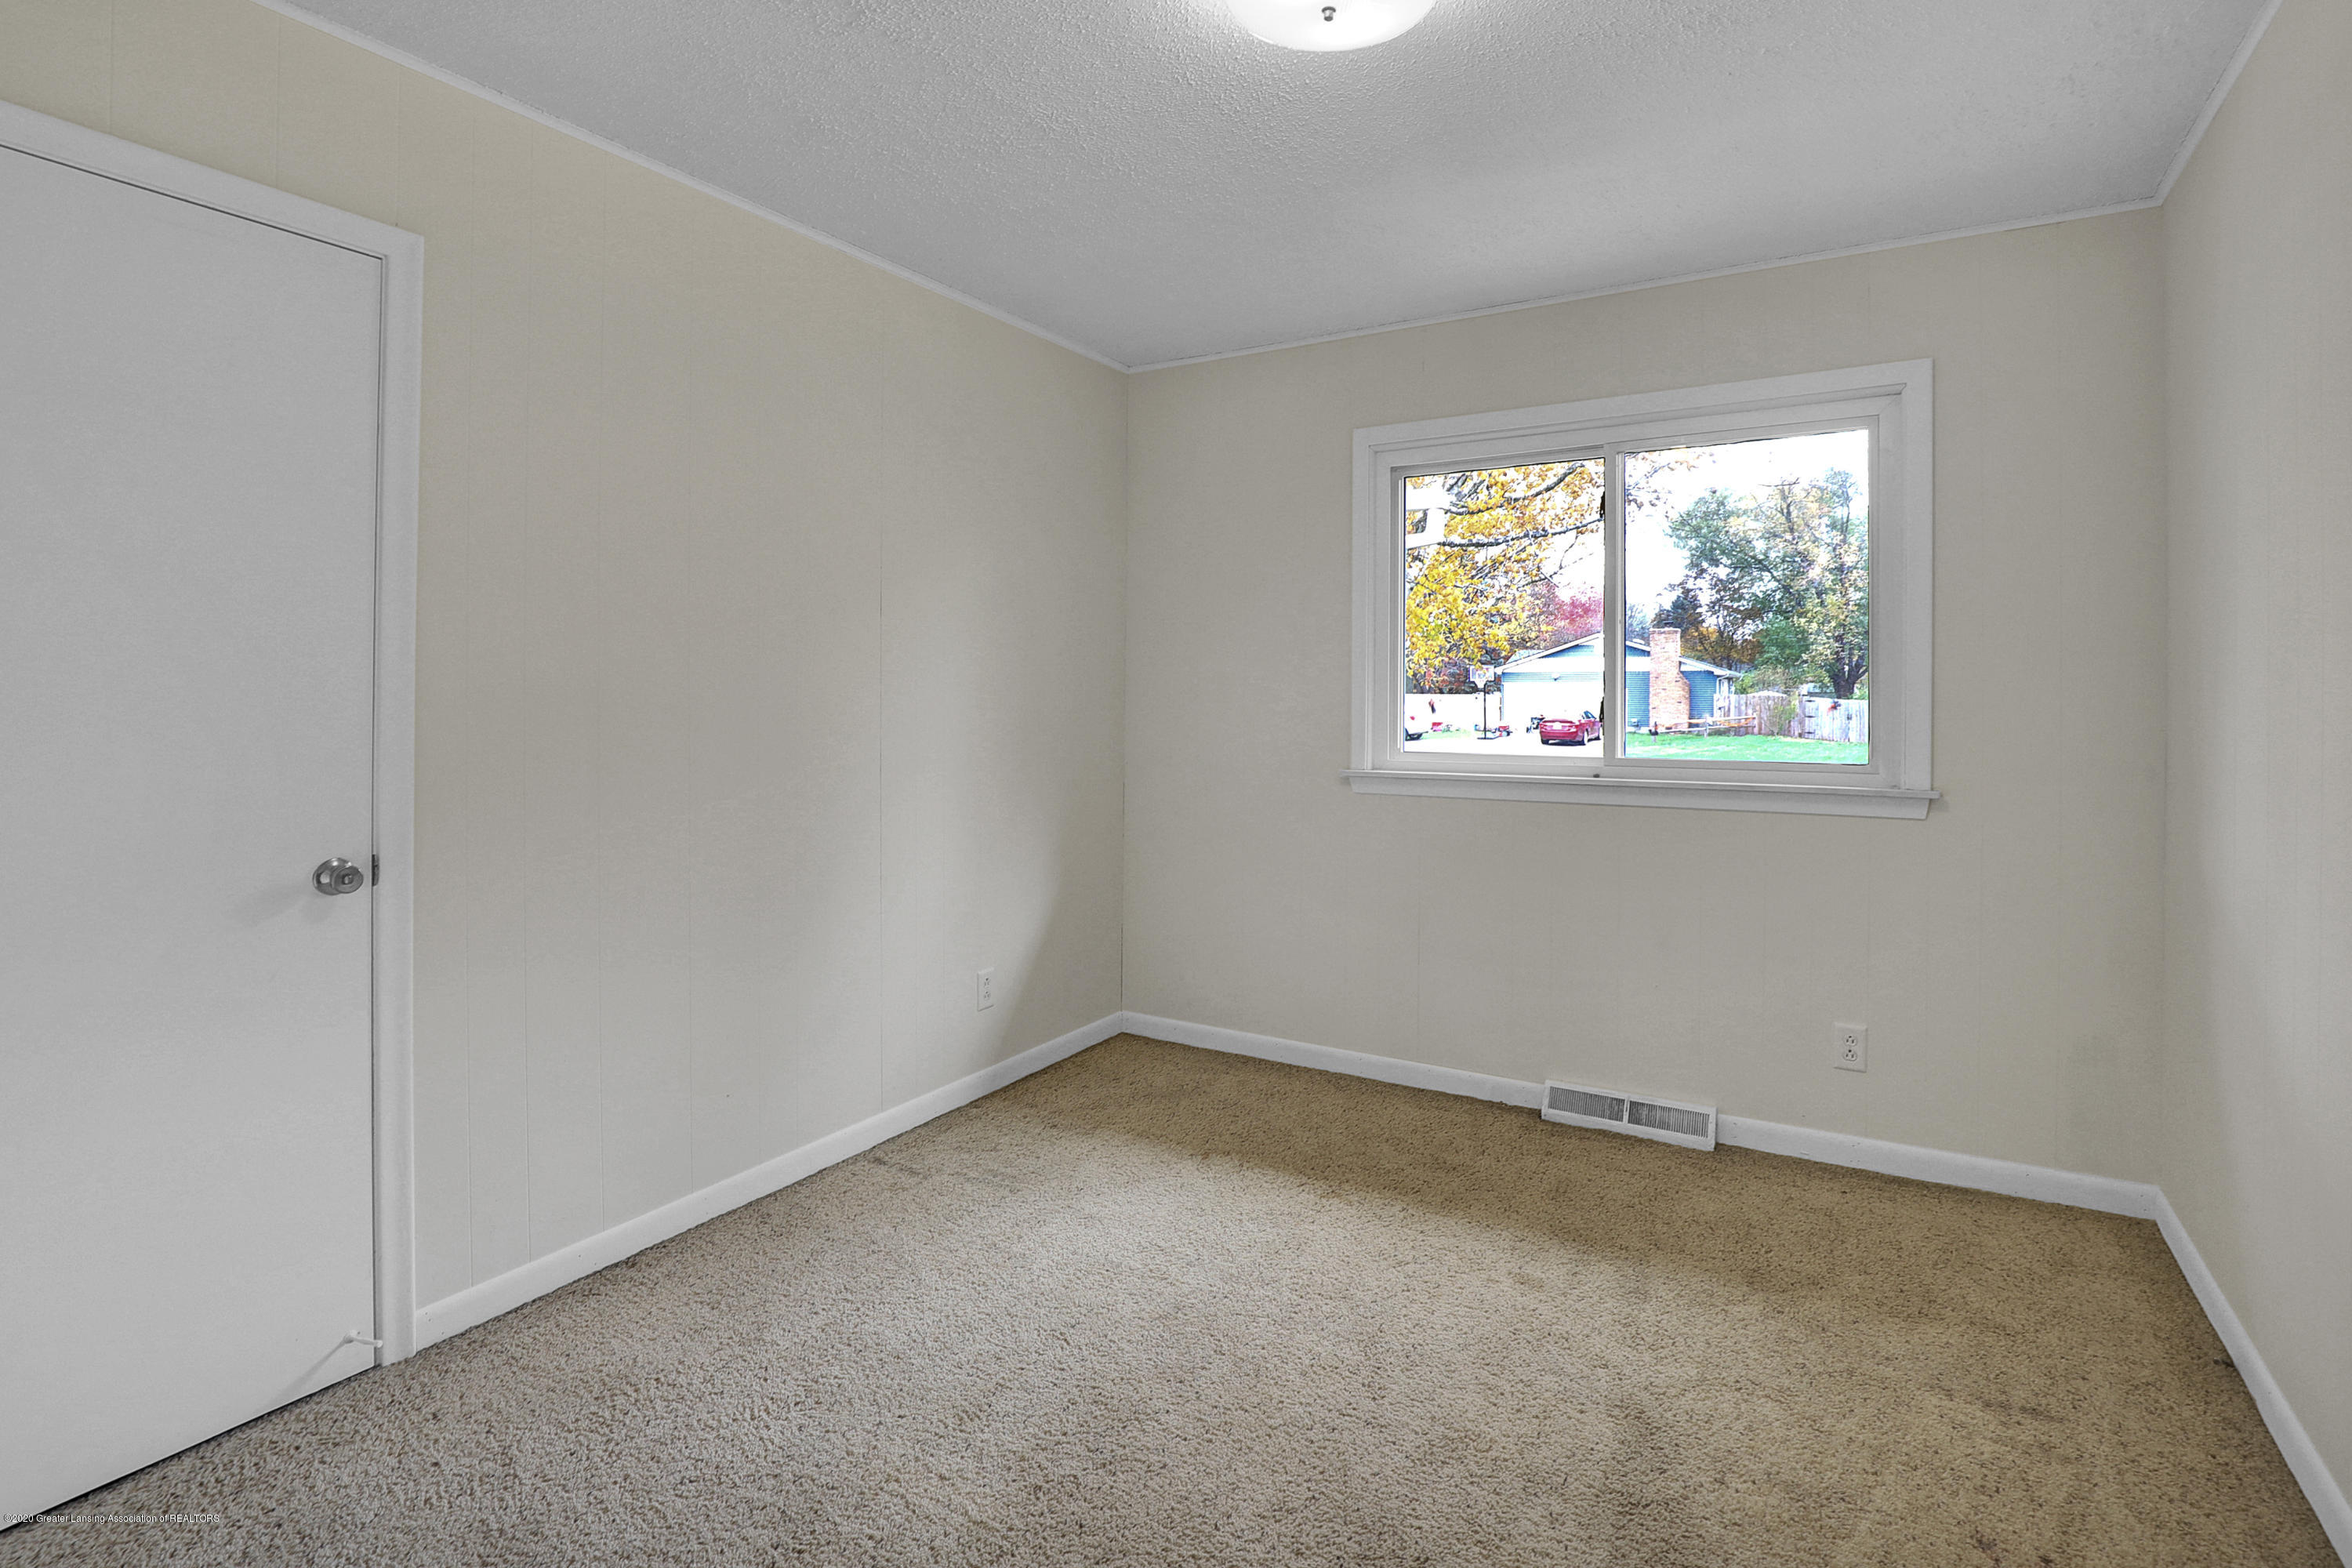 12981 Dundee Dr - Bedroom 1 - 16